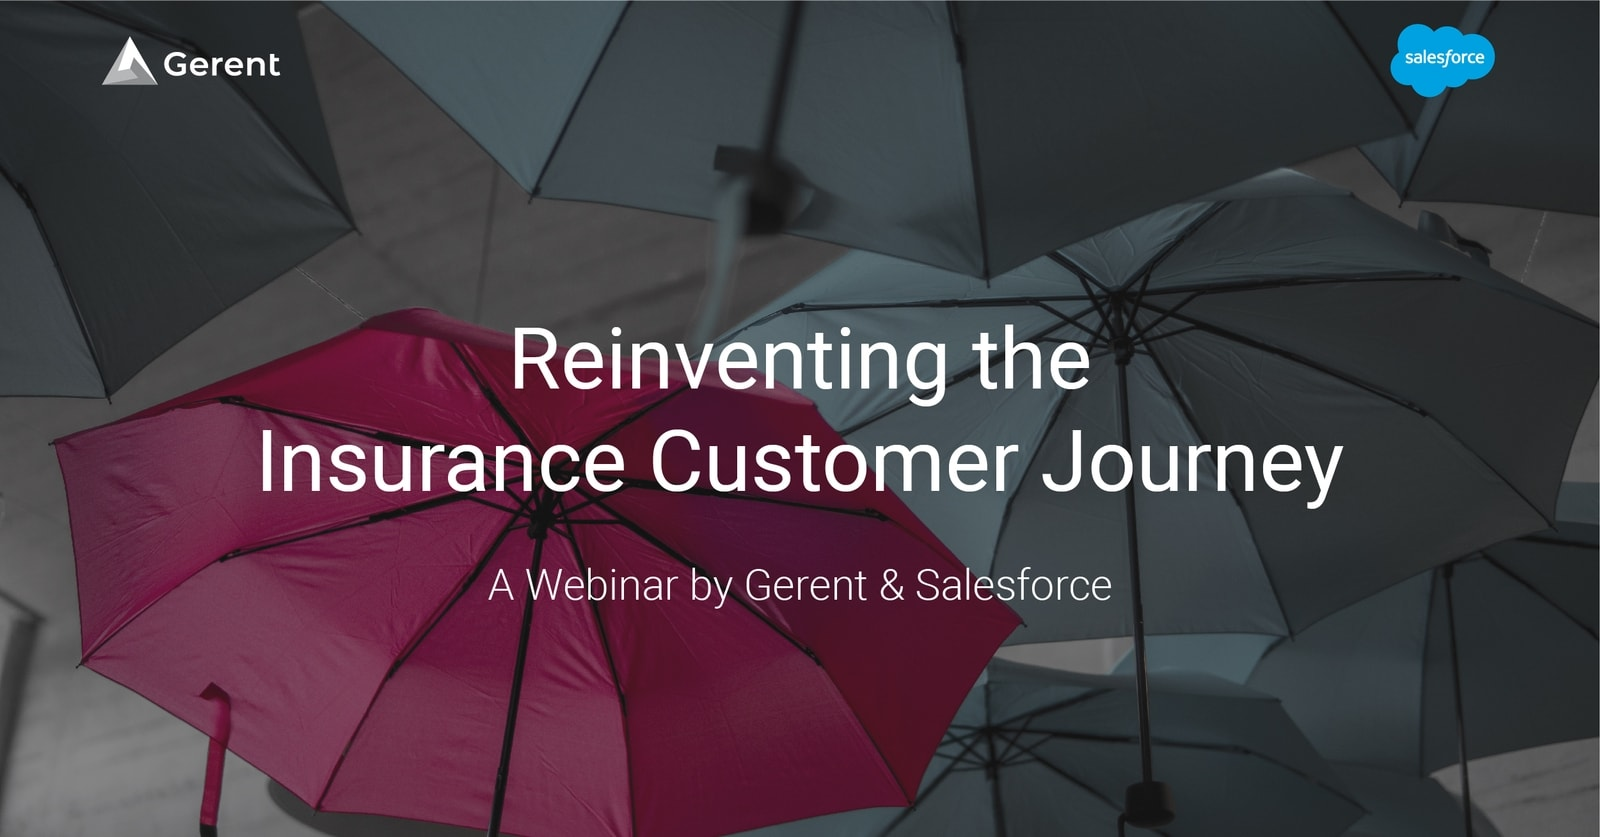 Reinventing the Insurance Customer Journey